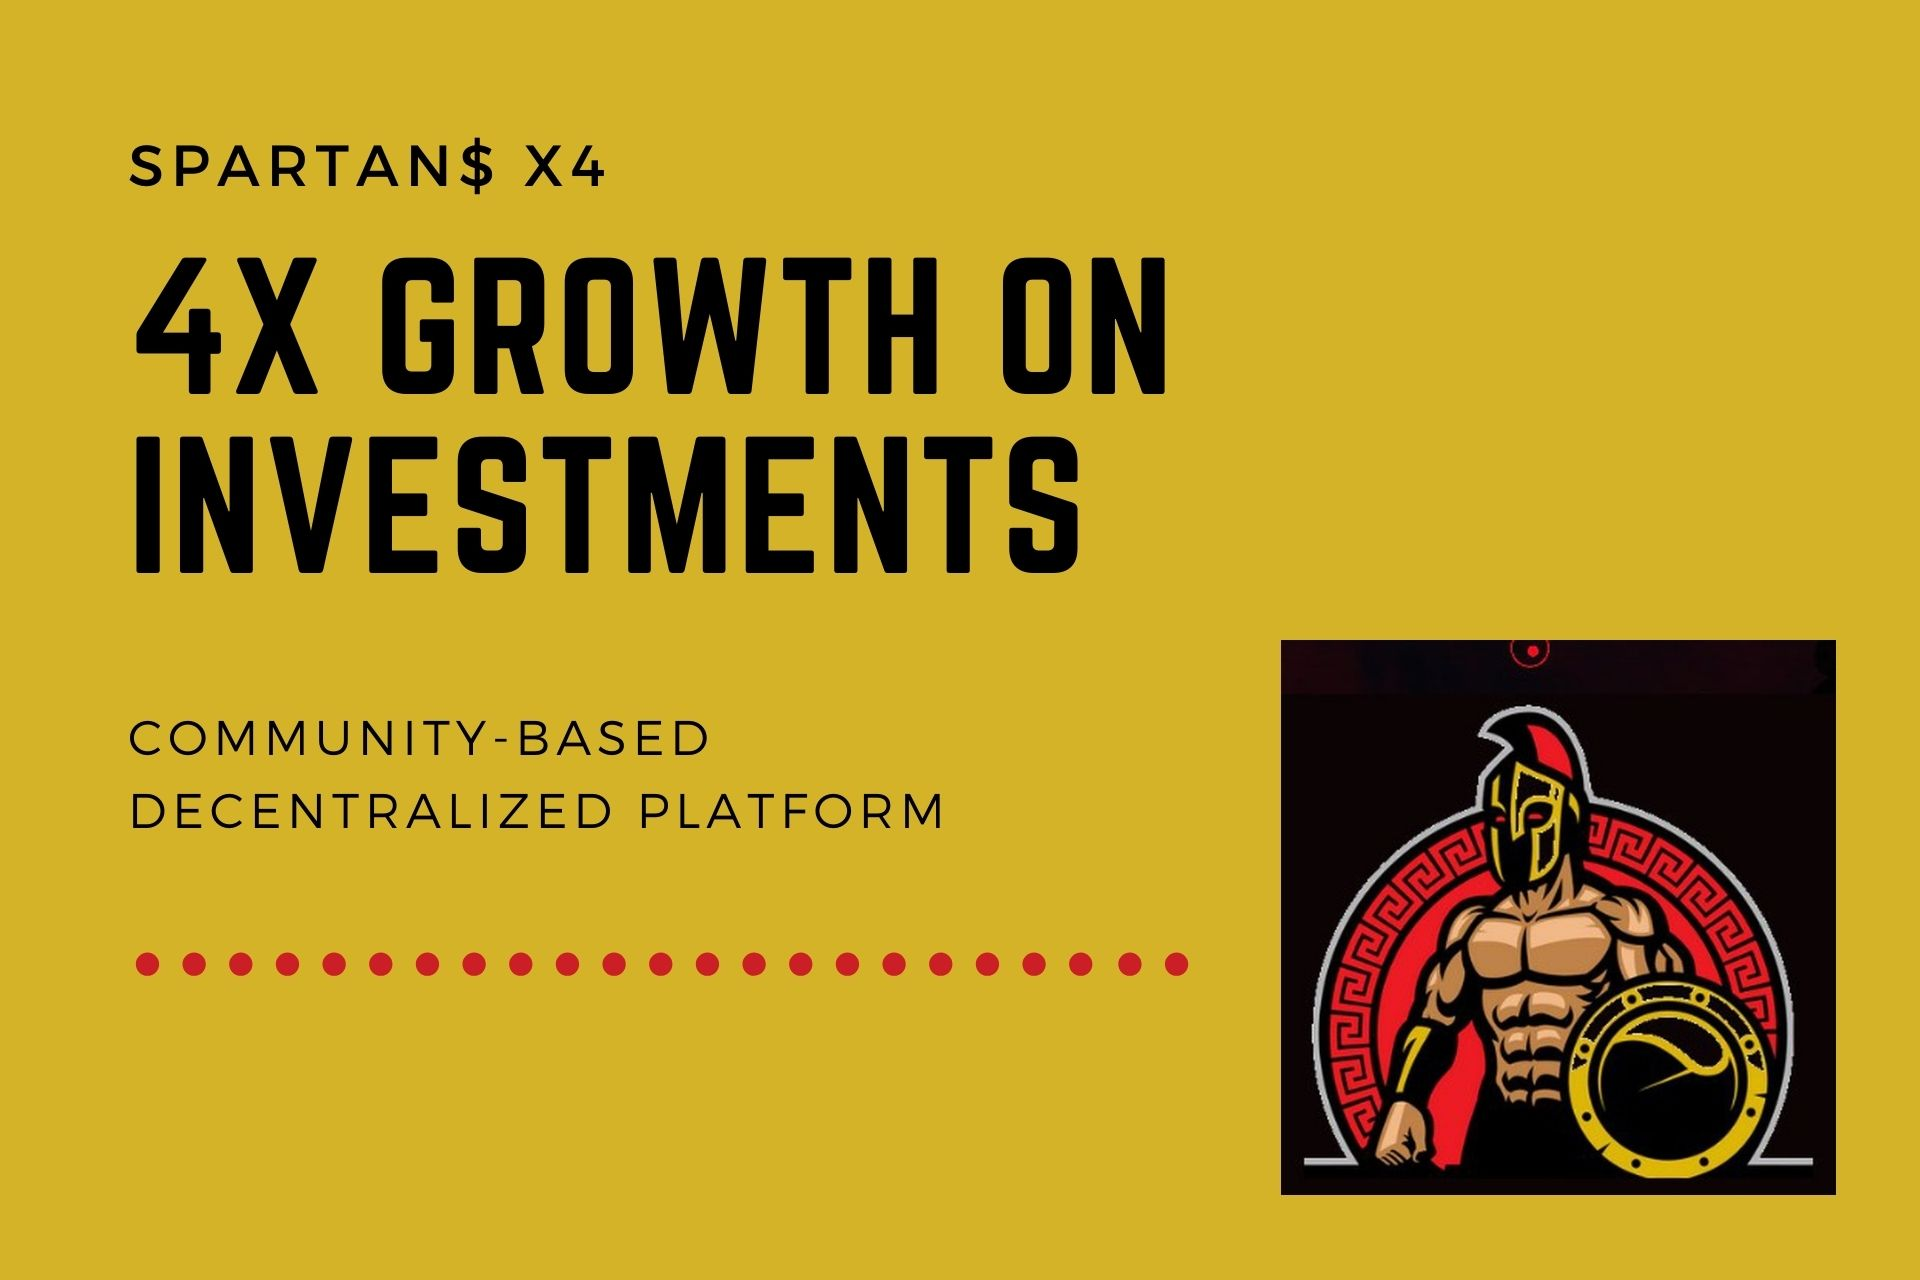 Spartan$ X4: Community-Based Decentralized Platform With 4X Growth on Investments